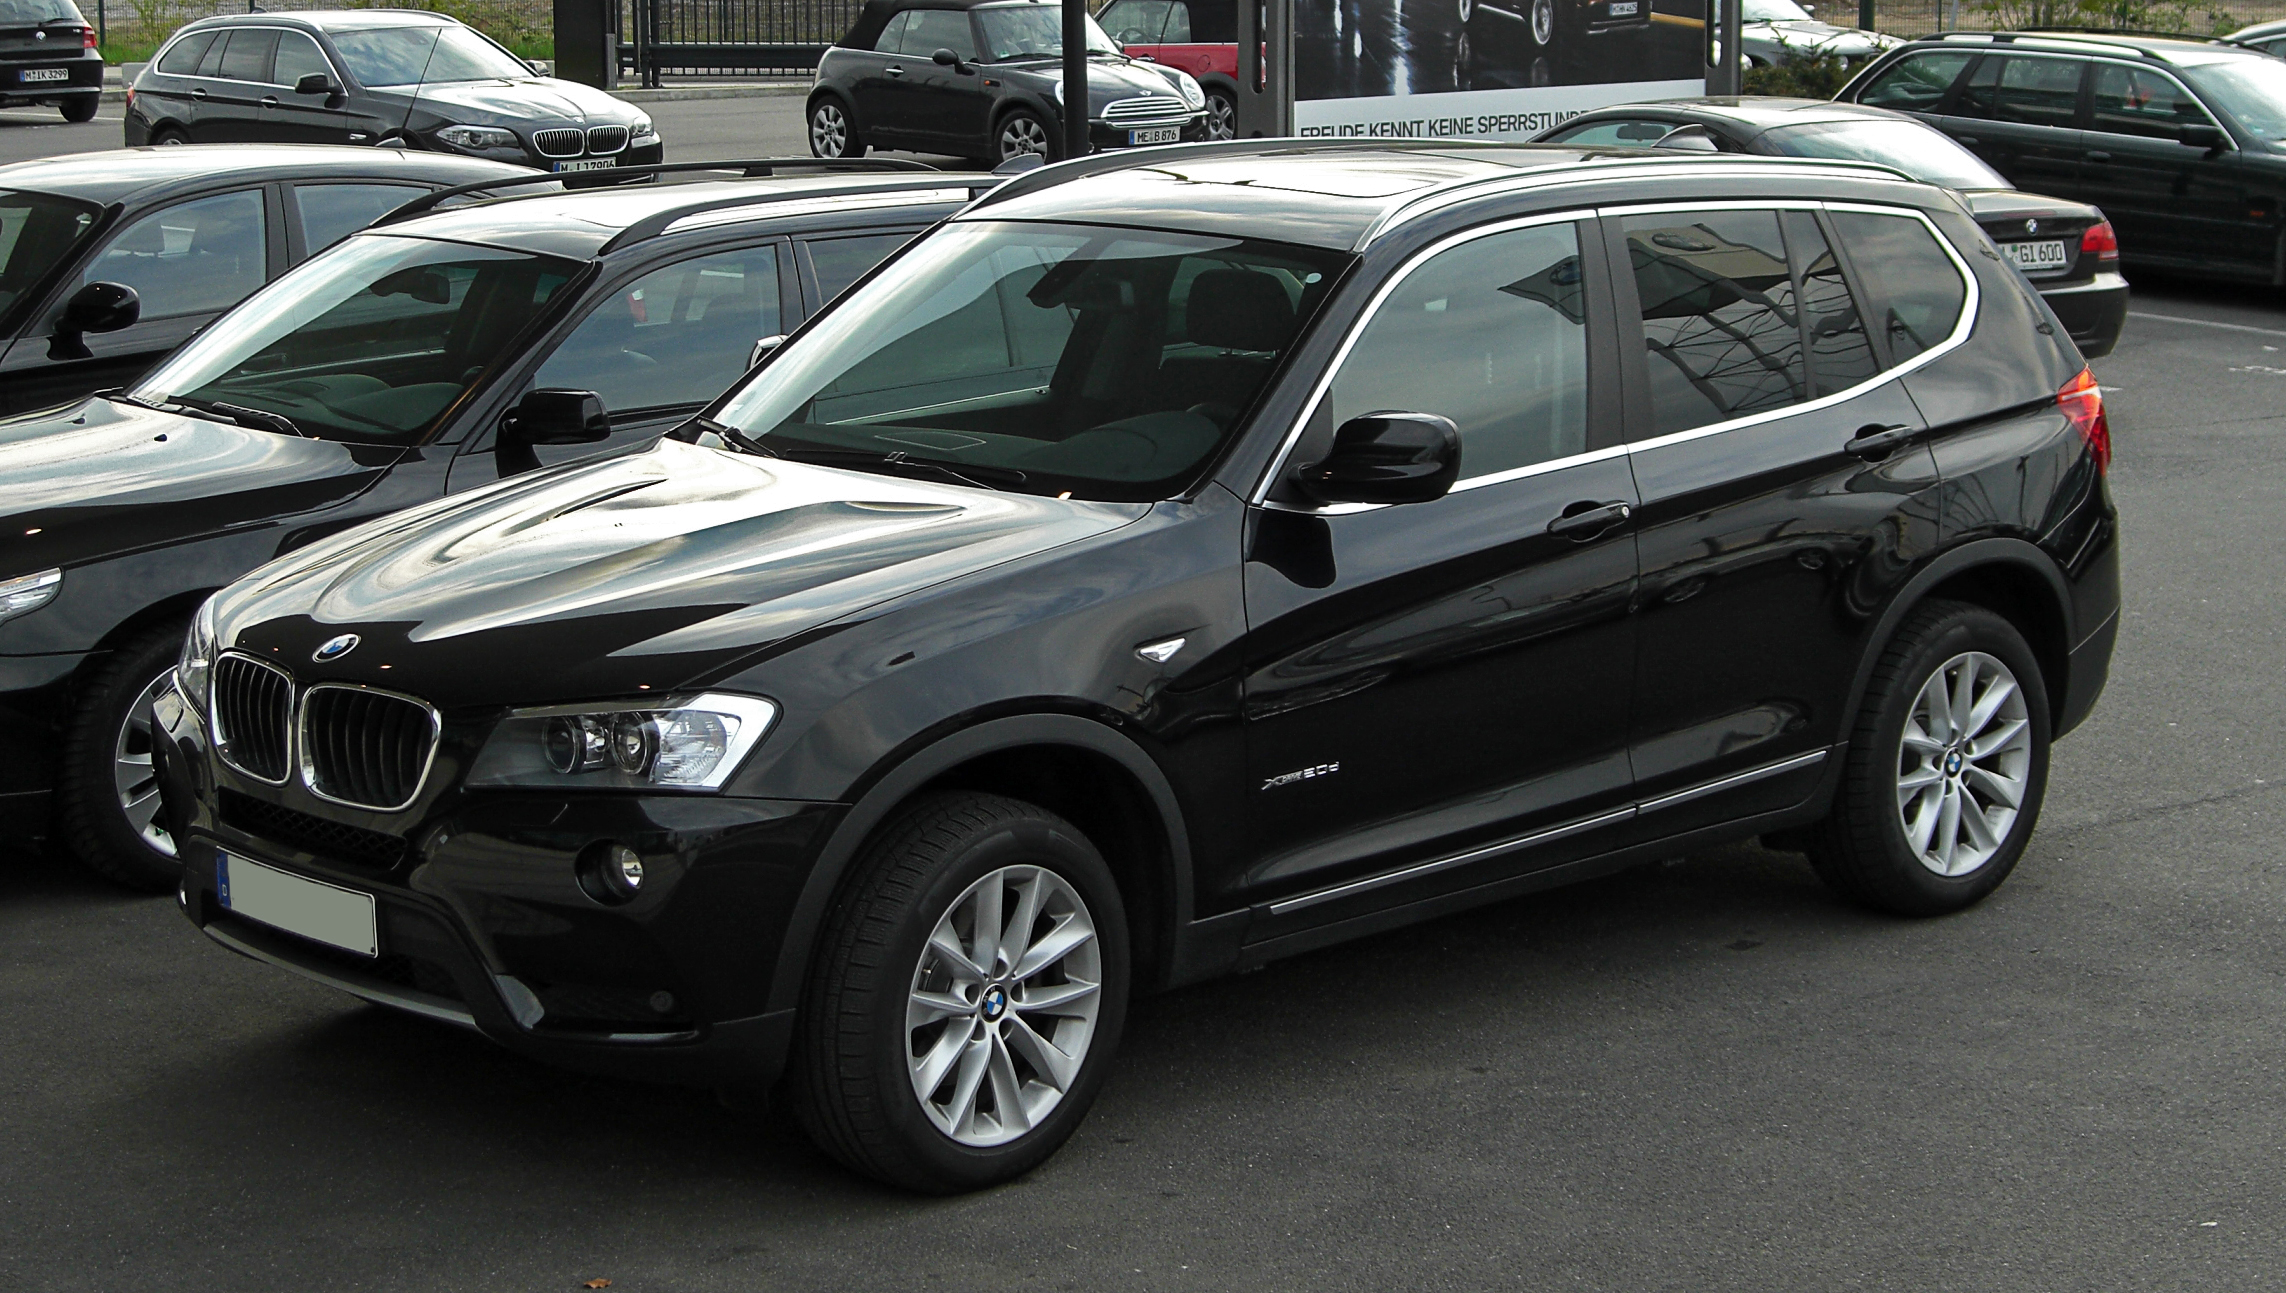 file bmw x3 xdrive20d f25 frontansicht 16 april 2011 d wikimedia commons. Black Bedroom Furniture Sets. Home Design Ideas